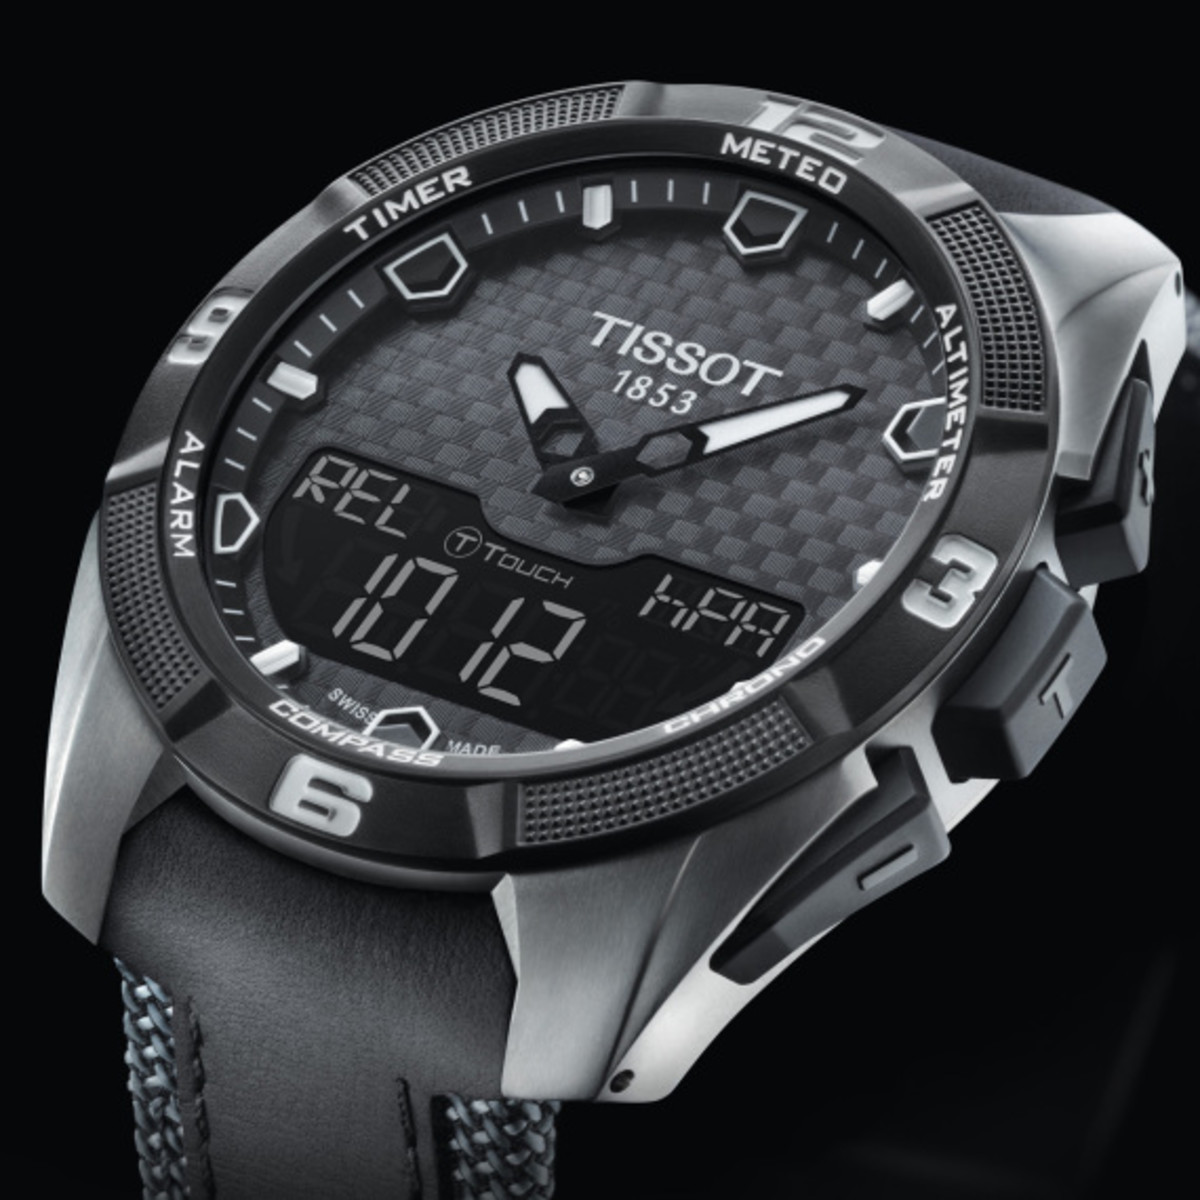 TISSOT T-Touch Expert Solar Watch - 2